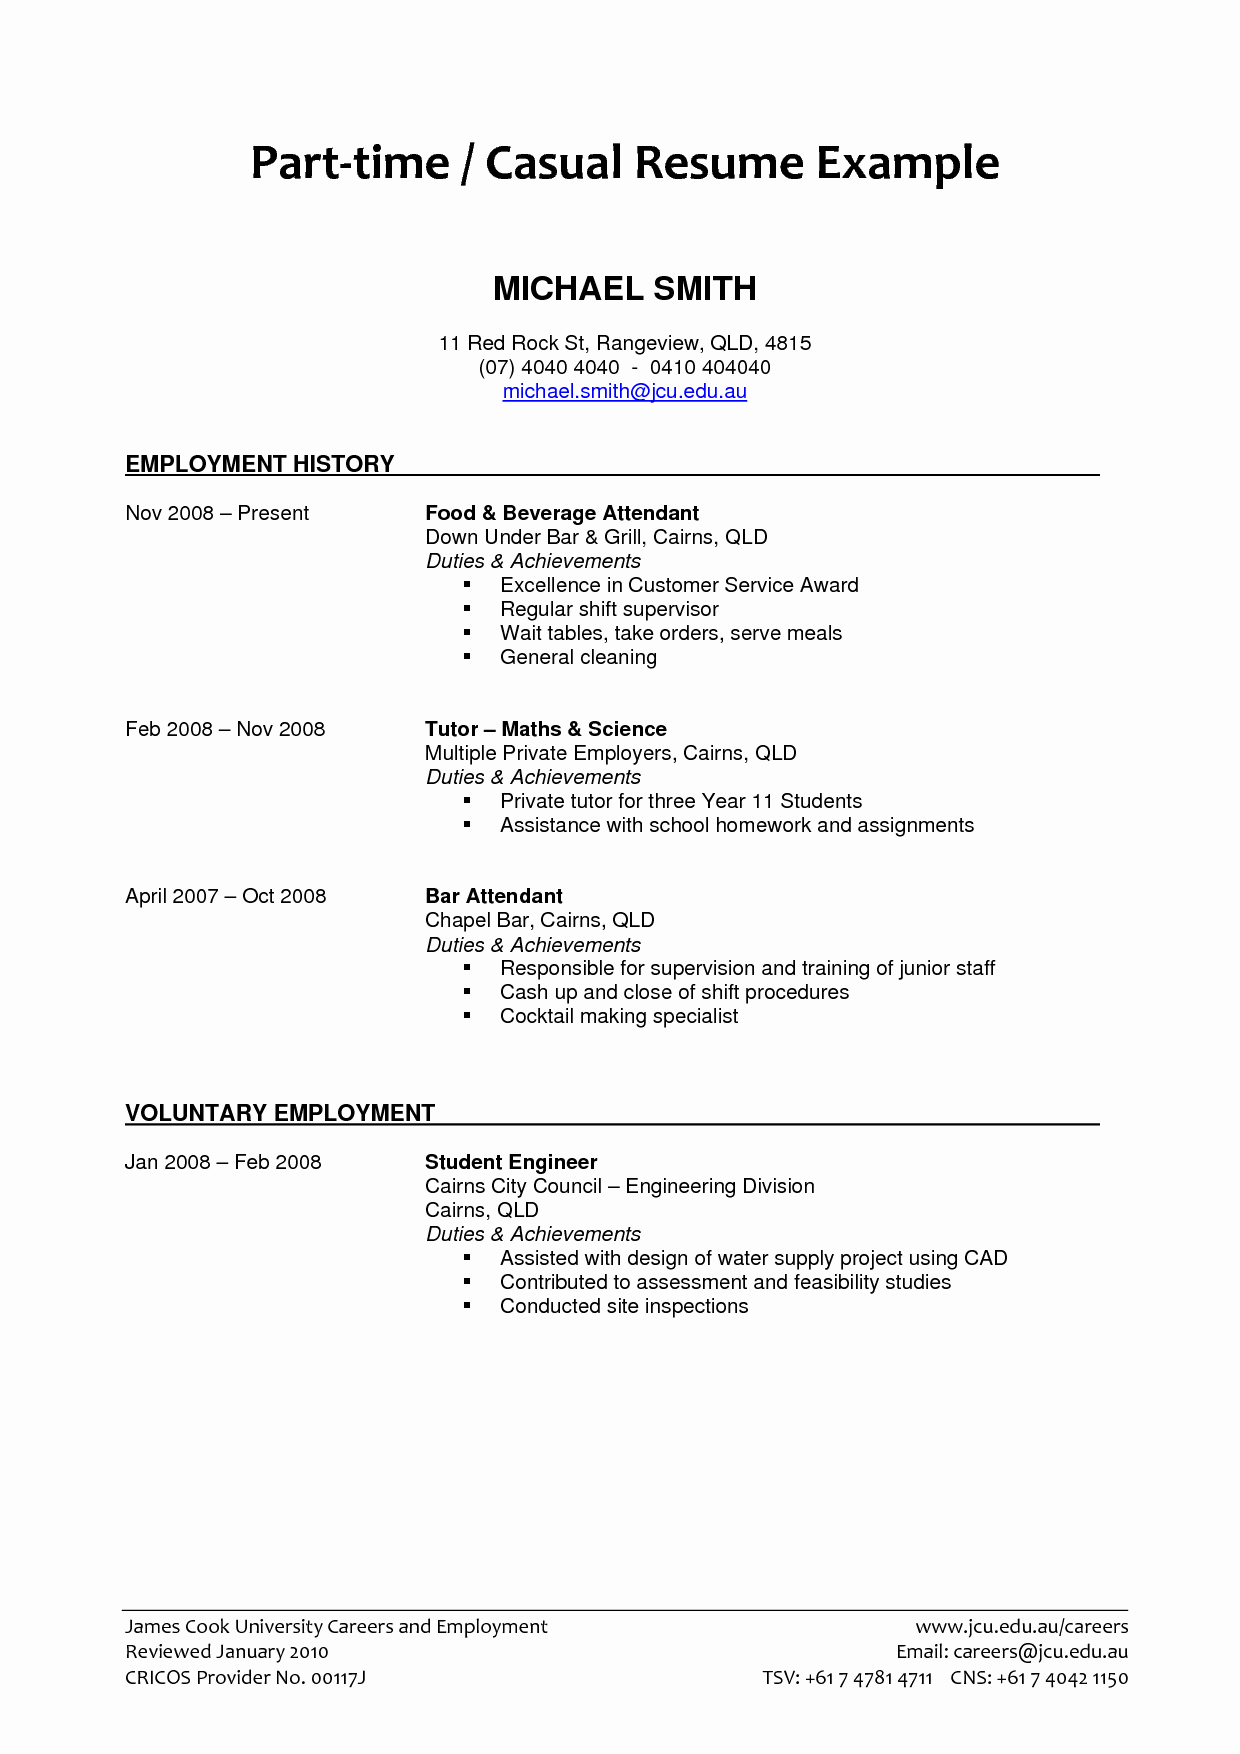 Part Time Job Resume Elegant Part Time Job Resume Examples 2019